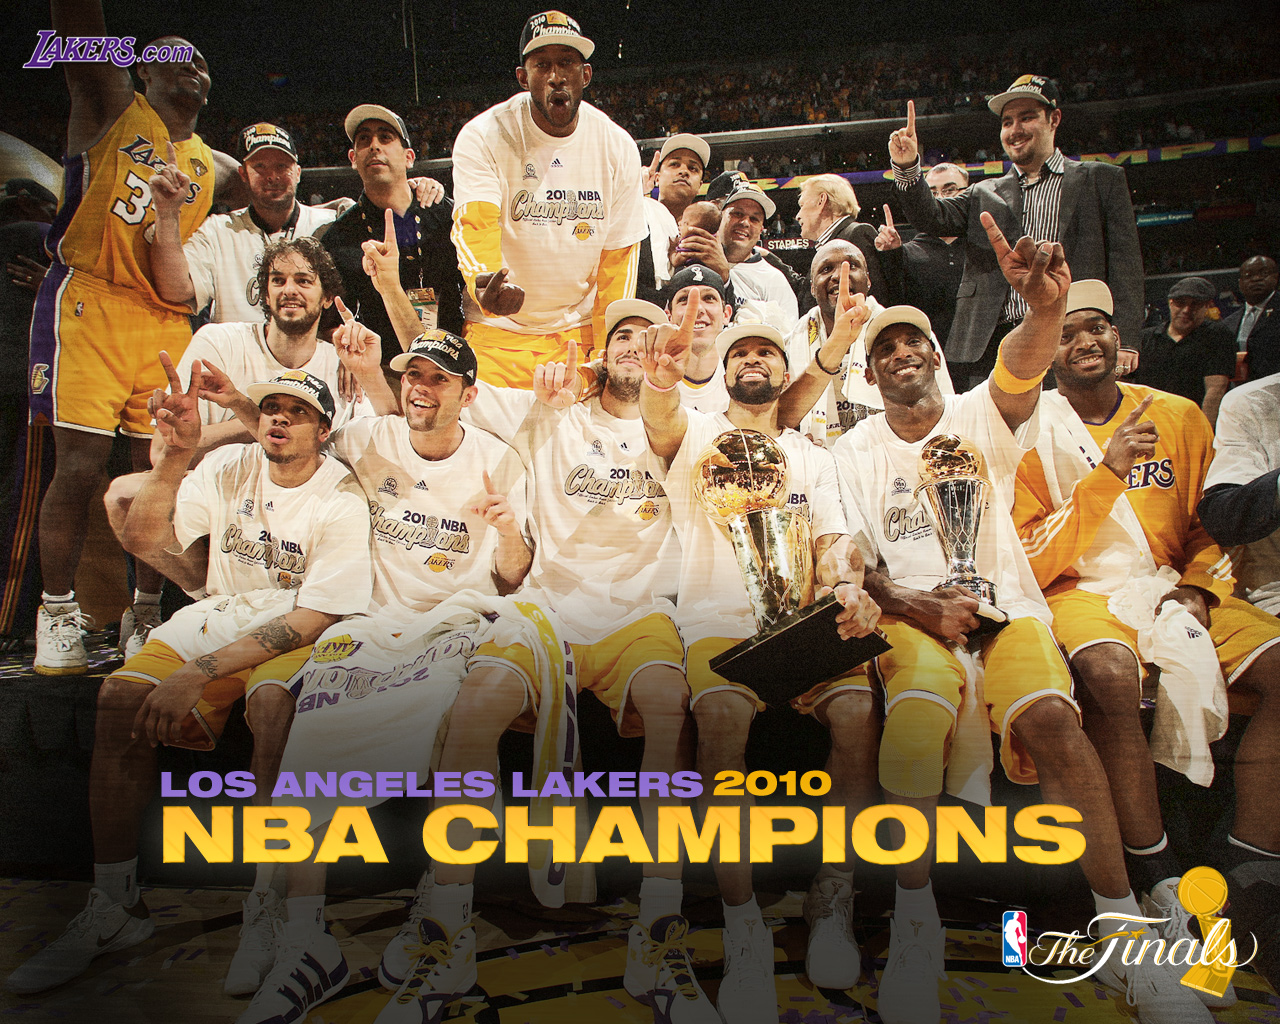 Motivational wallpaper on Winners : Los Angeles Lakers NBA 2010 Champions | Dont Give Up World